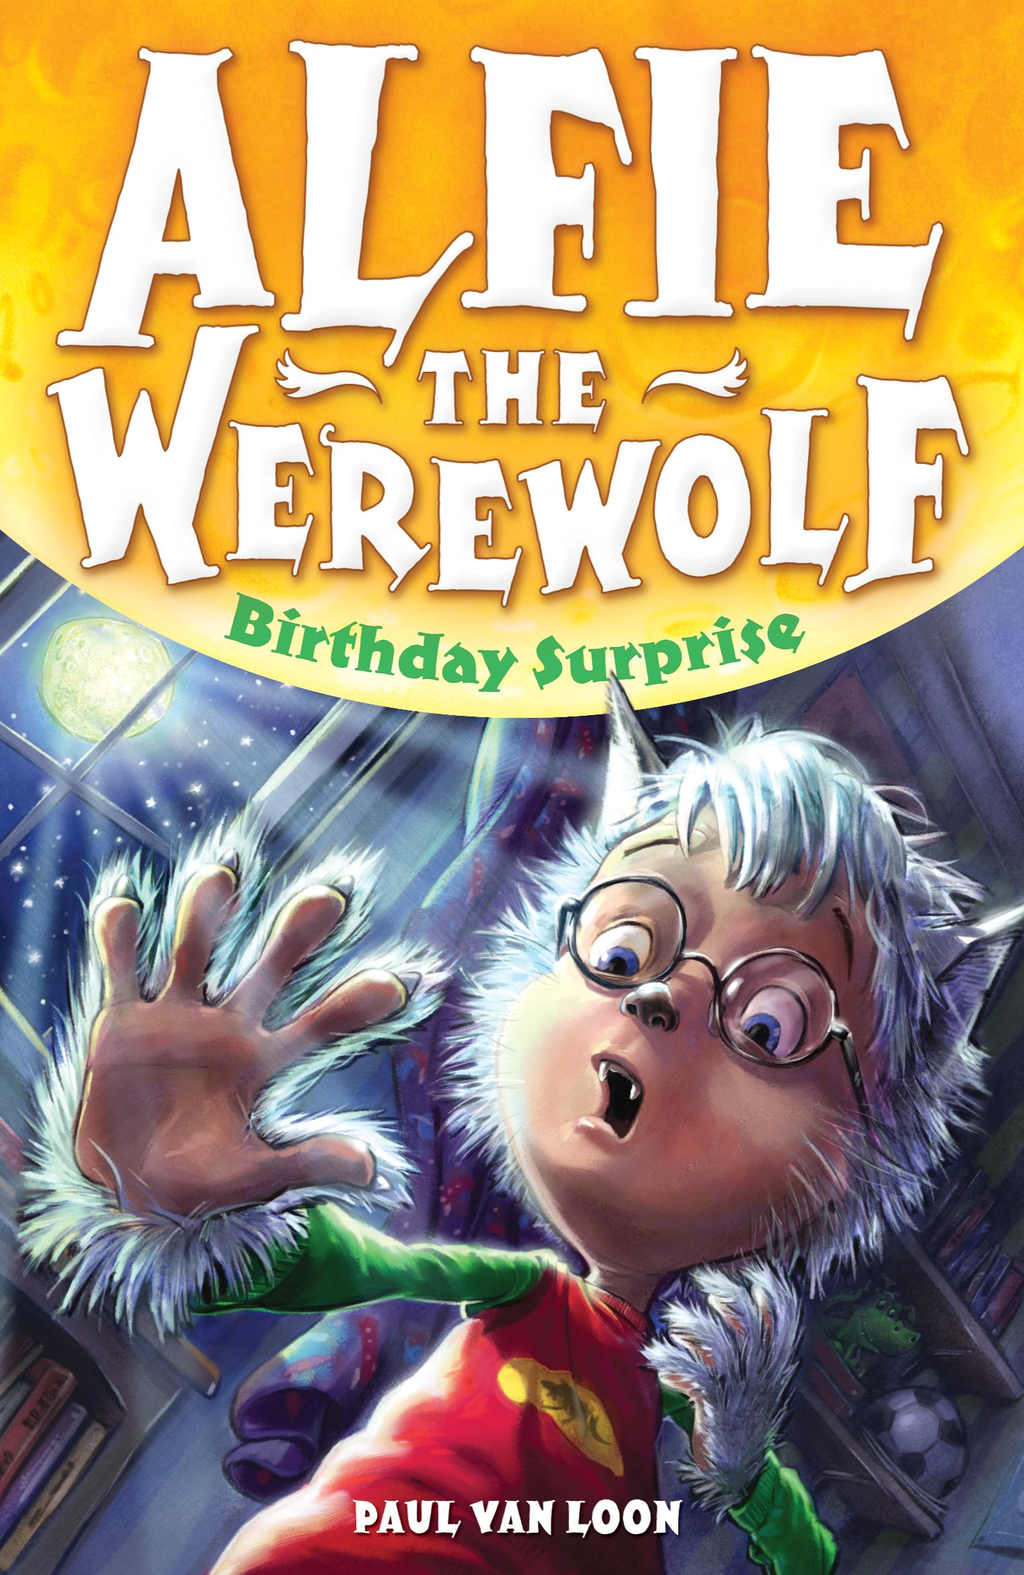 Alfie the Werewolf 1: Birthday Surprise